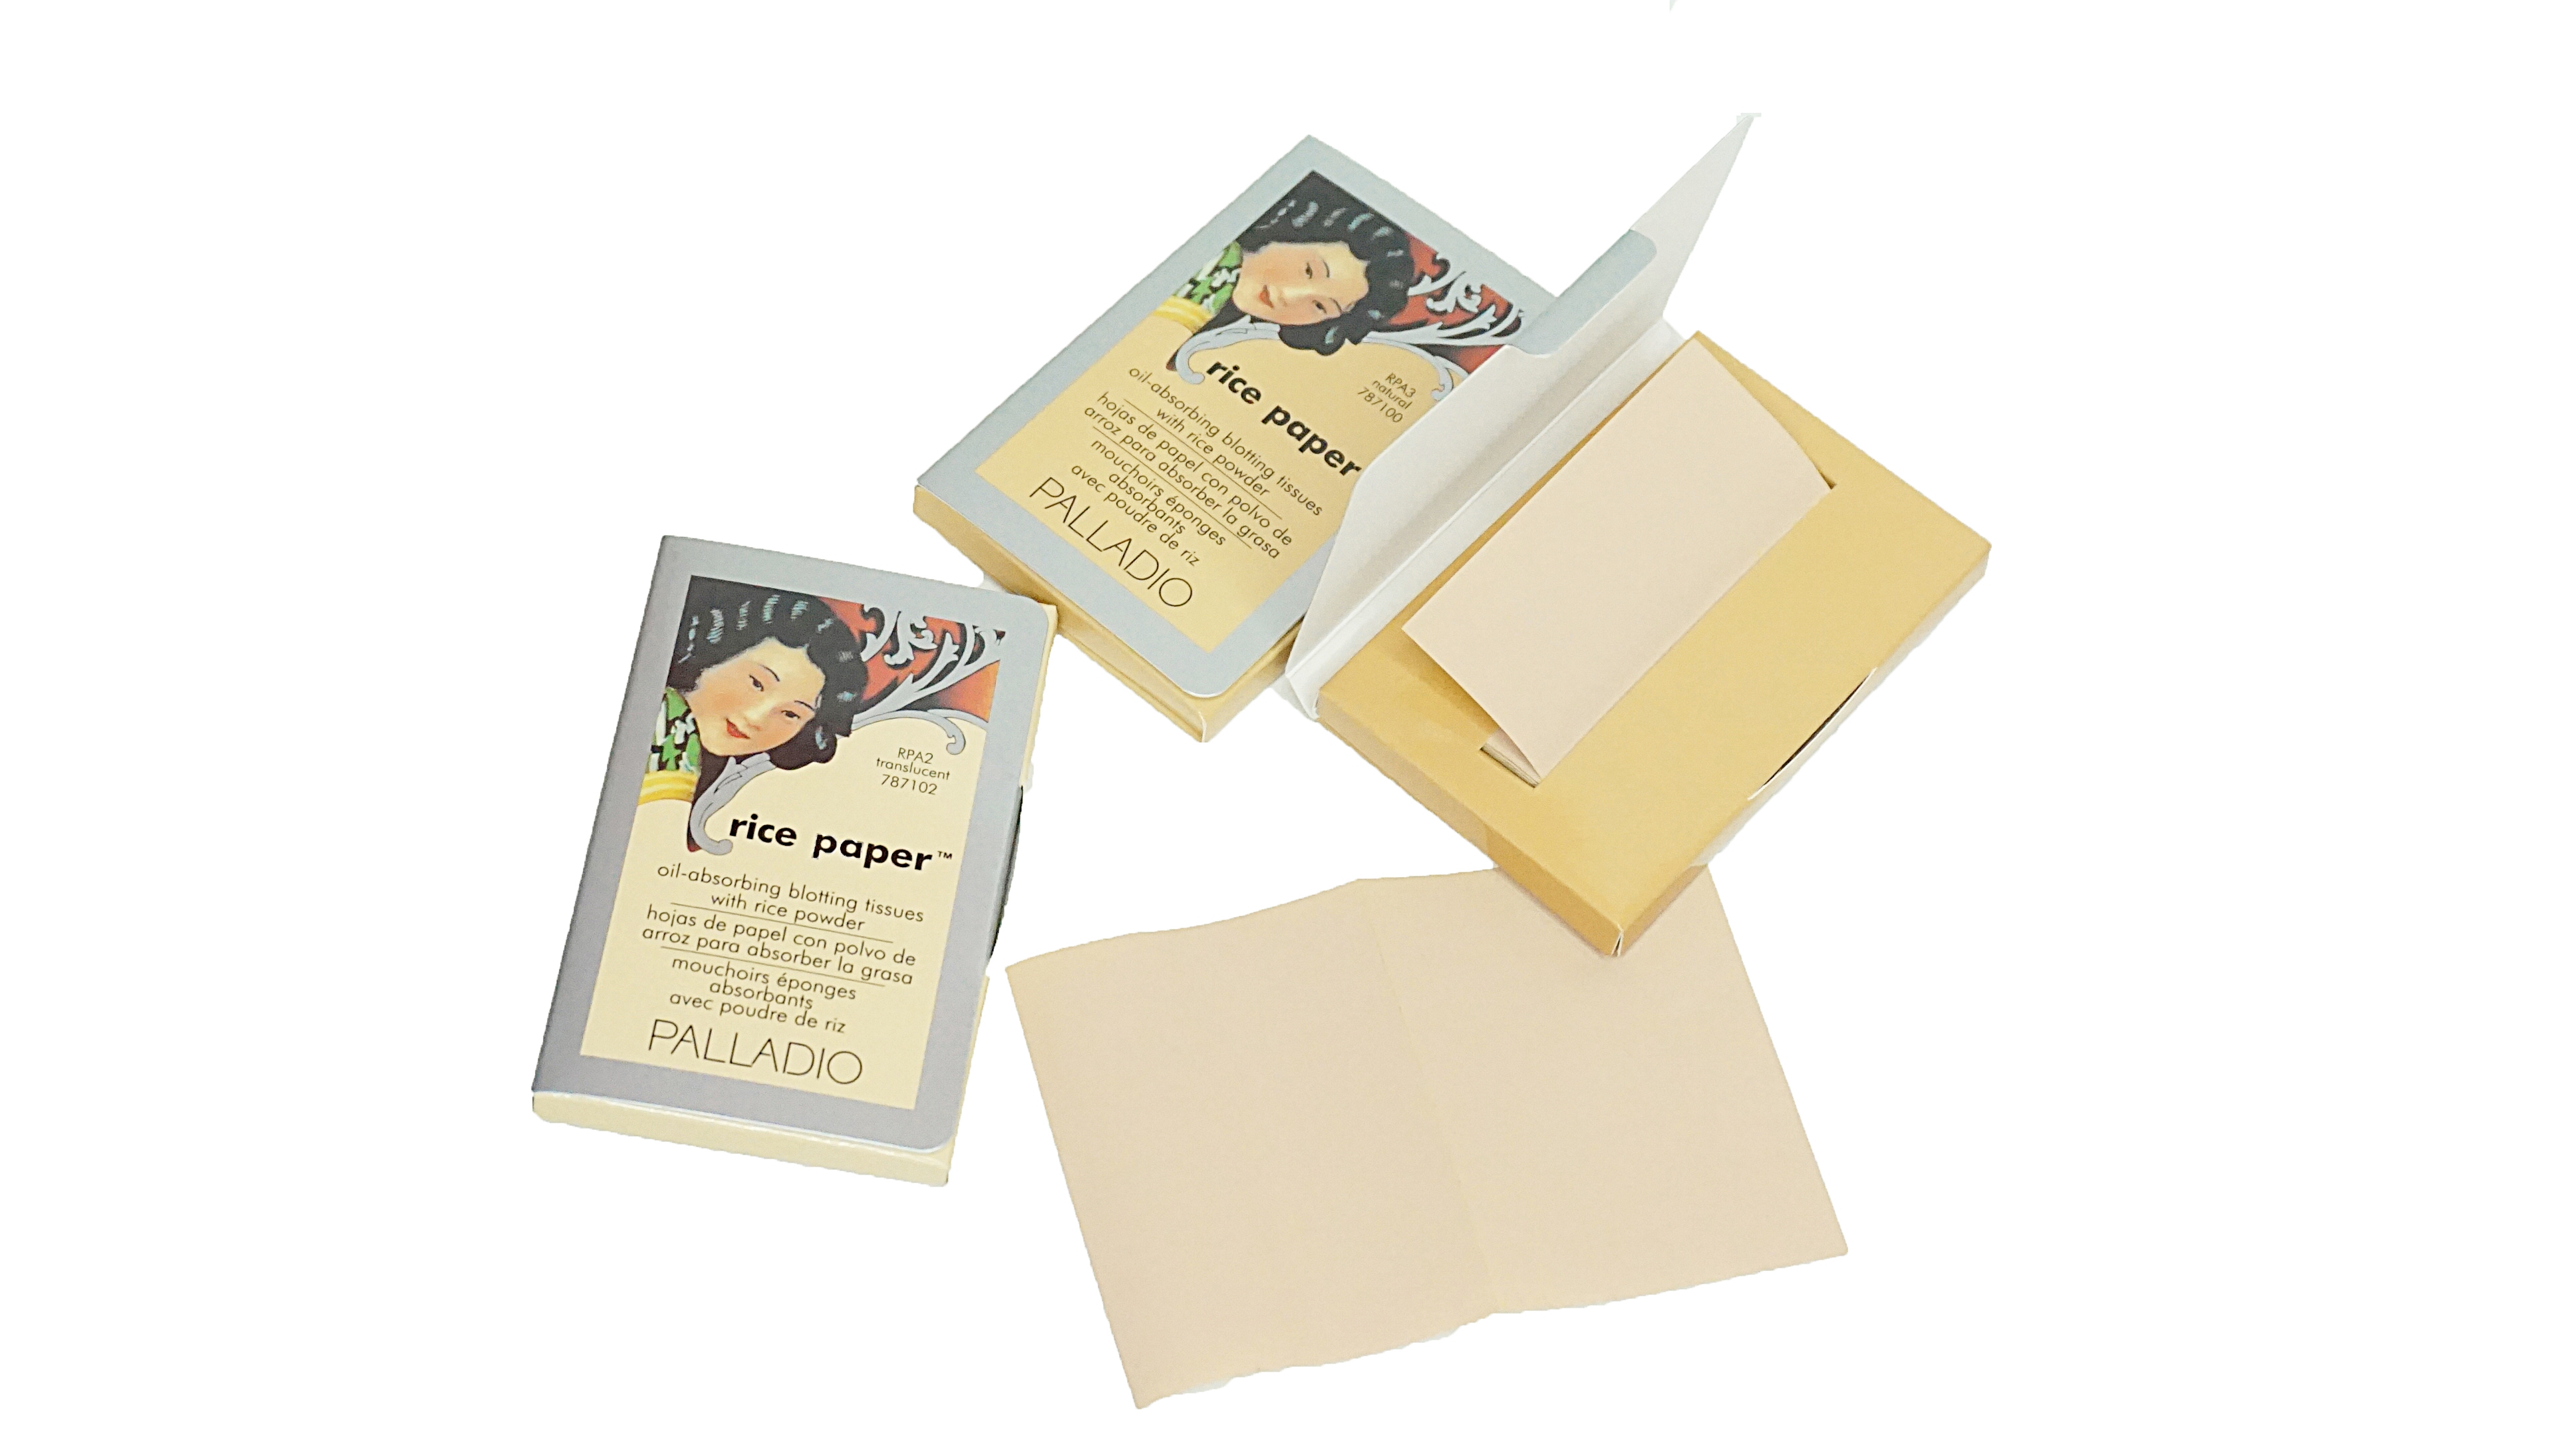 Palladio Rice Paper Powdered Blotting Tissues